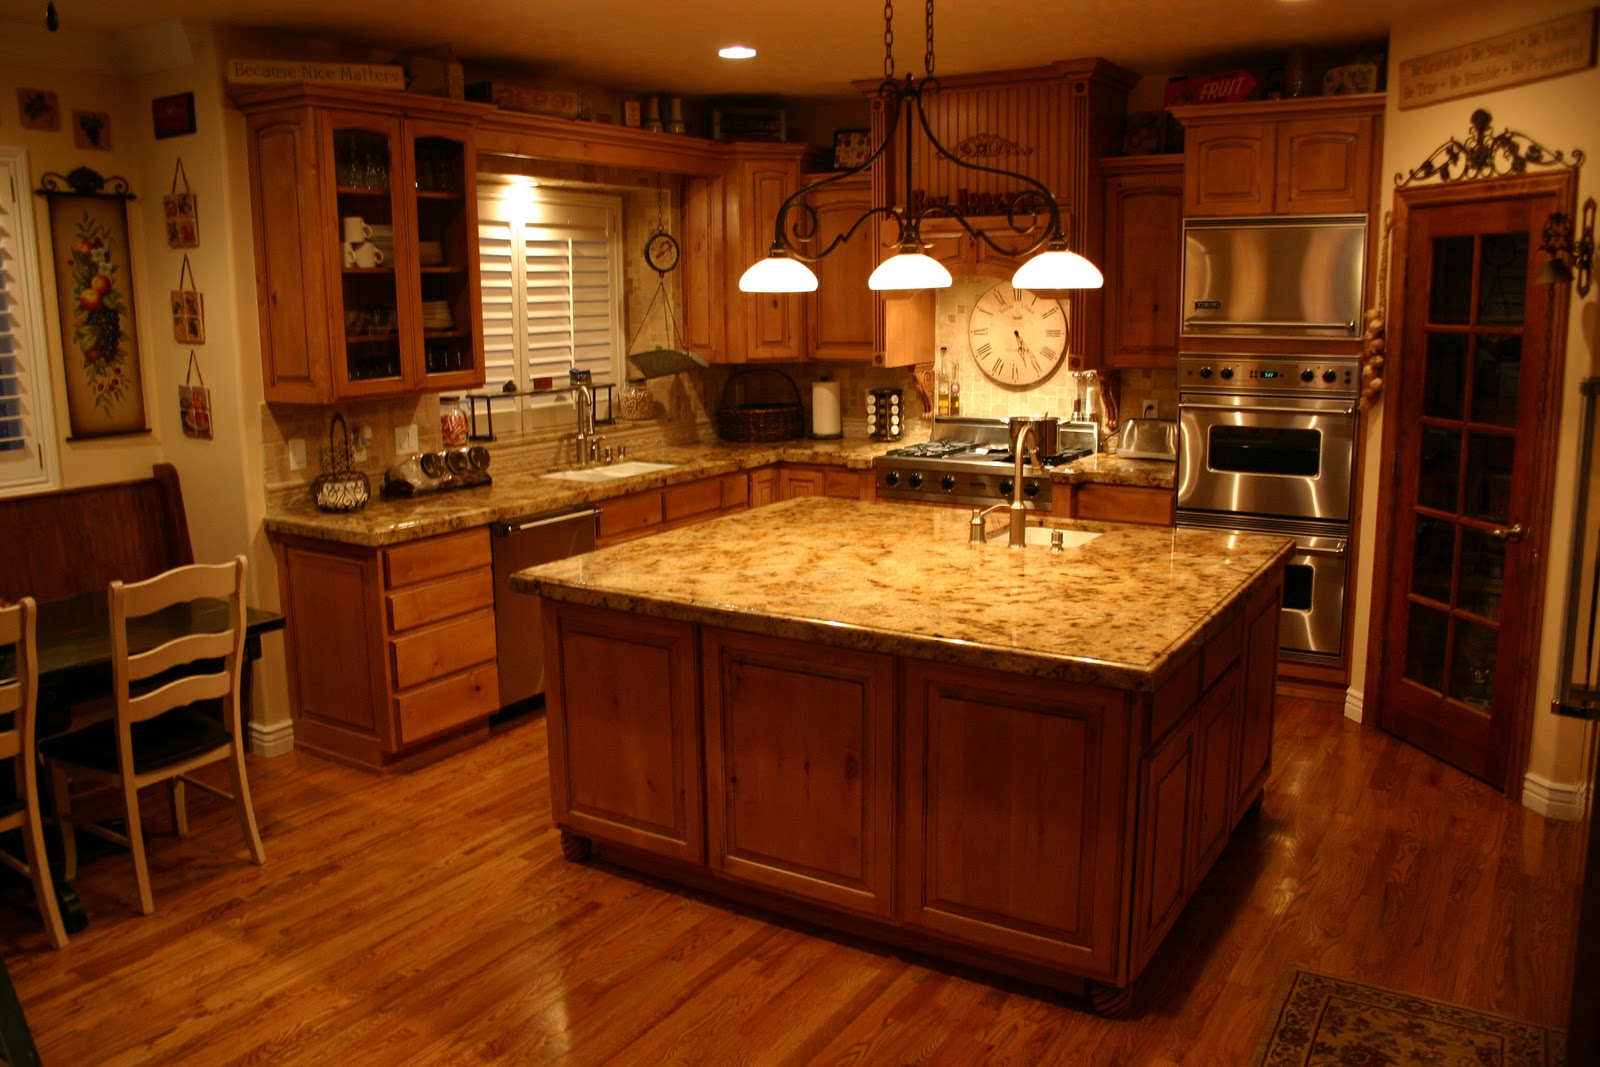 granite kitchen pictures photo - 2